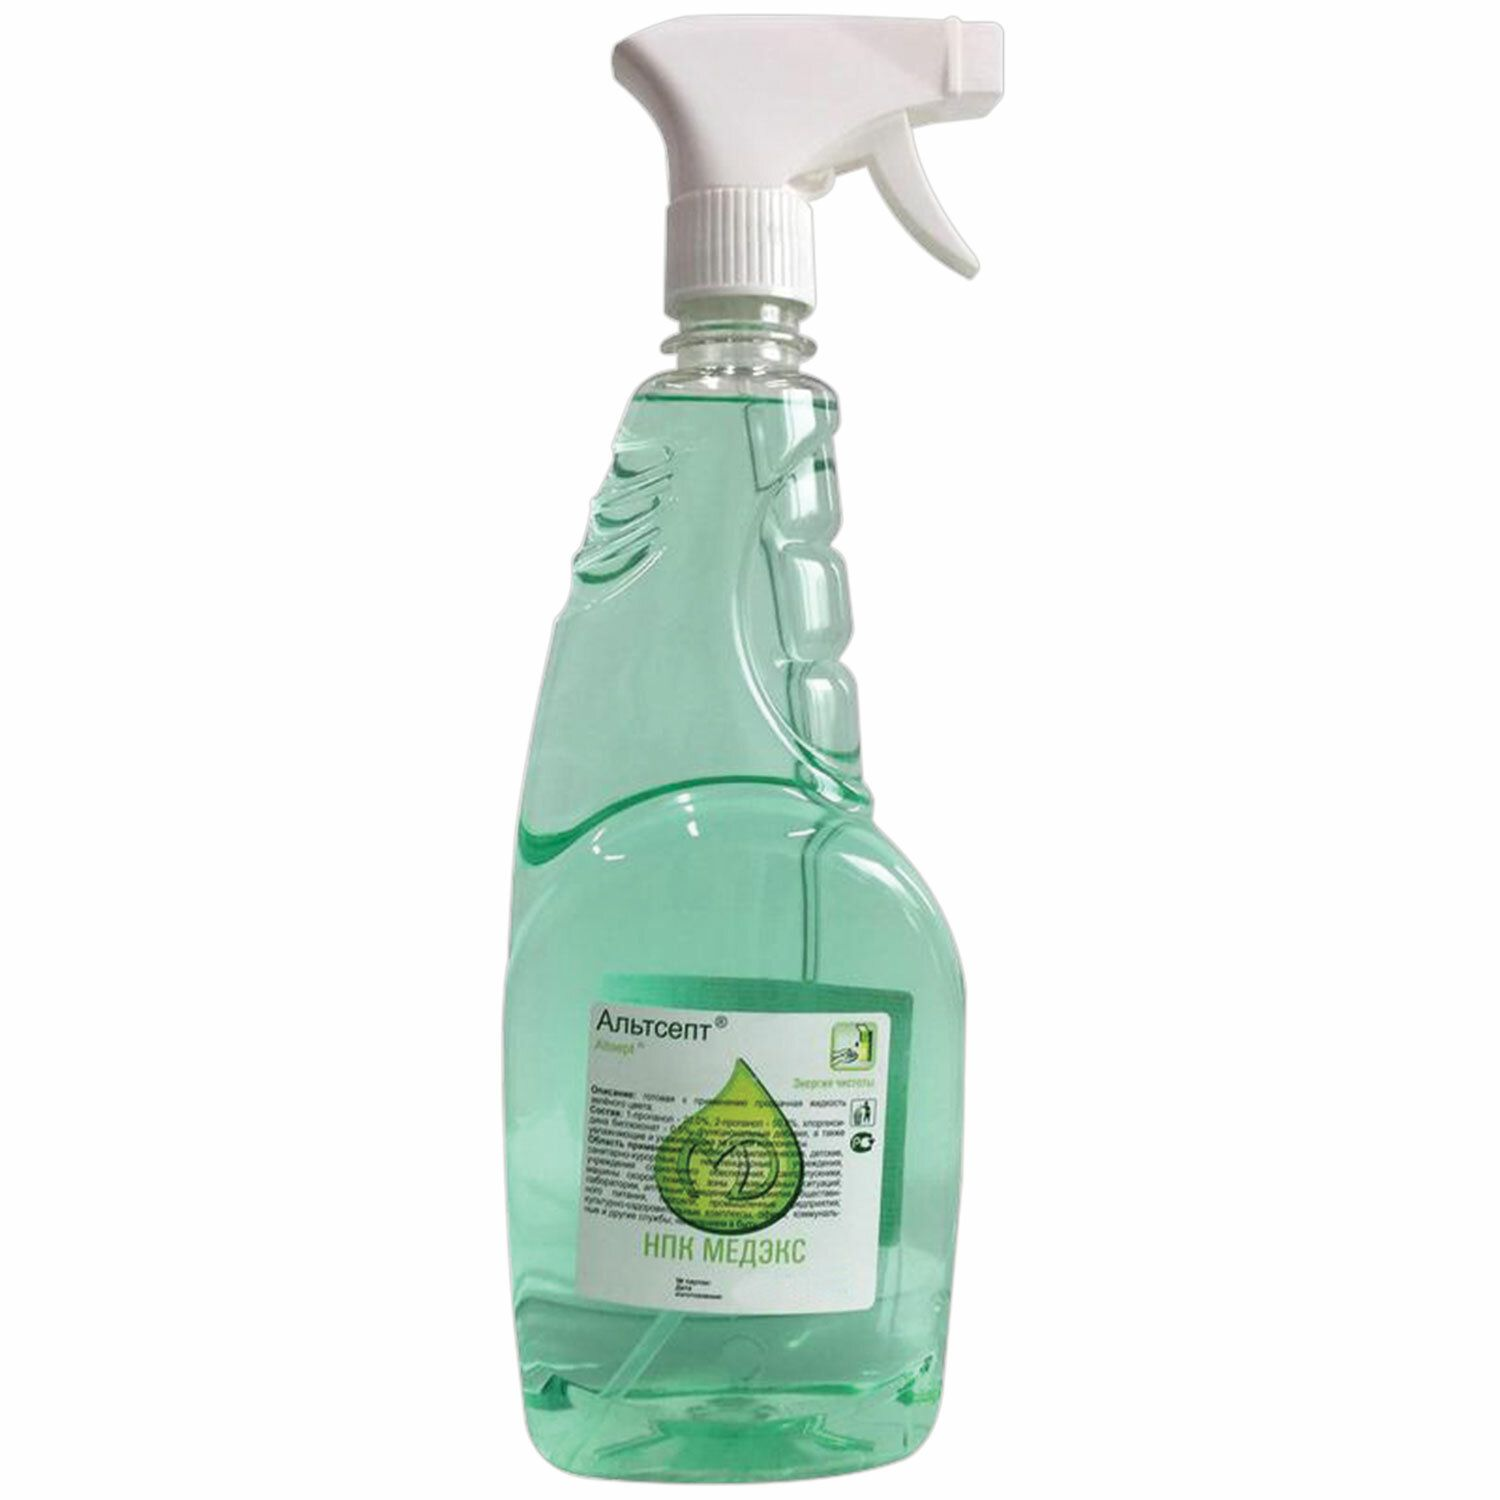 ALTSEPT / Antiseptic, skin disinfecting alcohol-containing 70% ready-made solution, spray, 750 ml